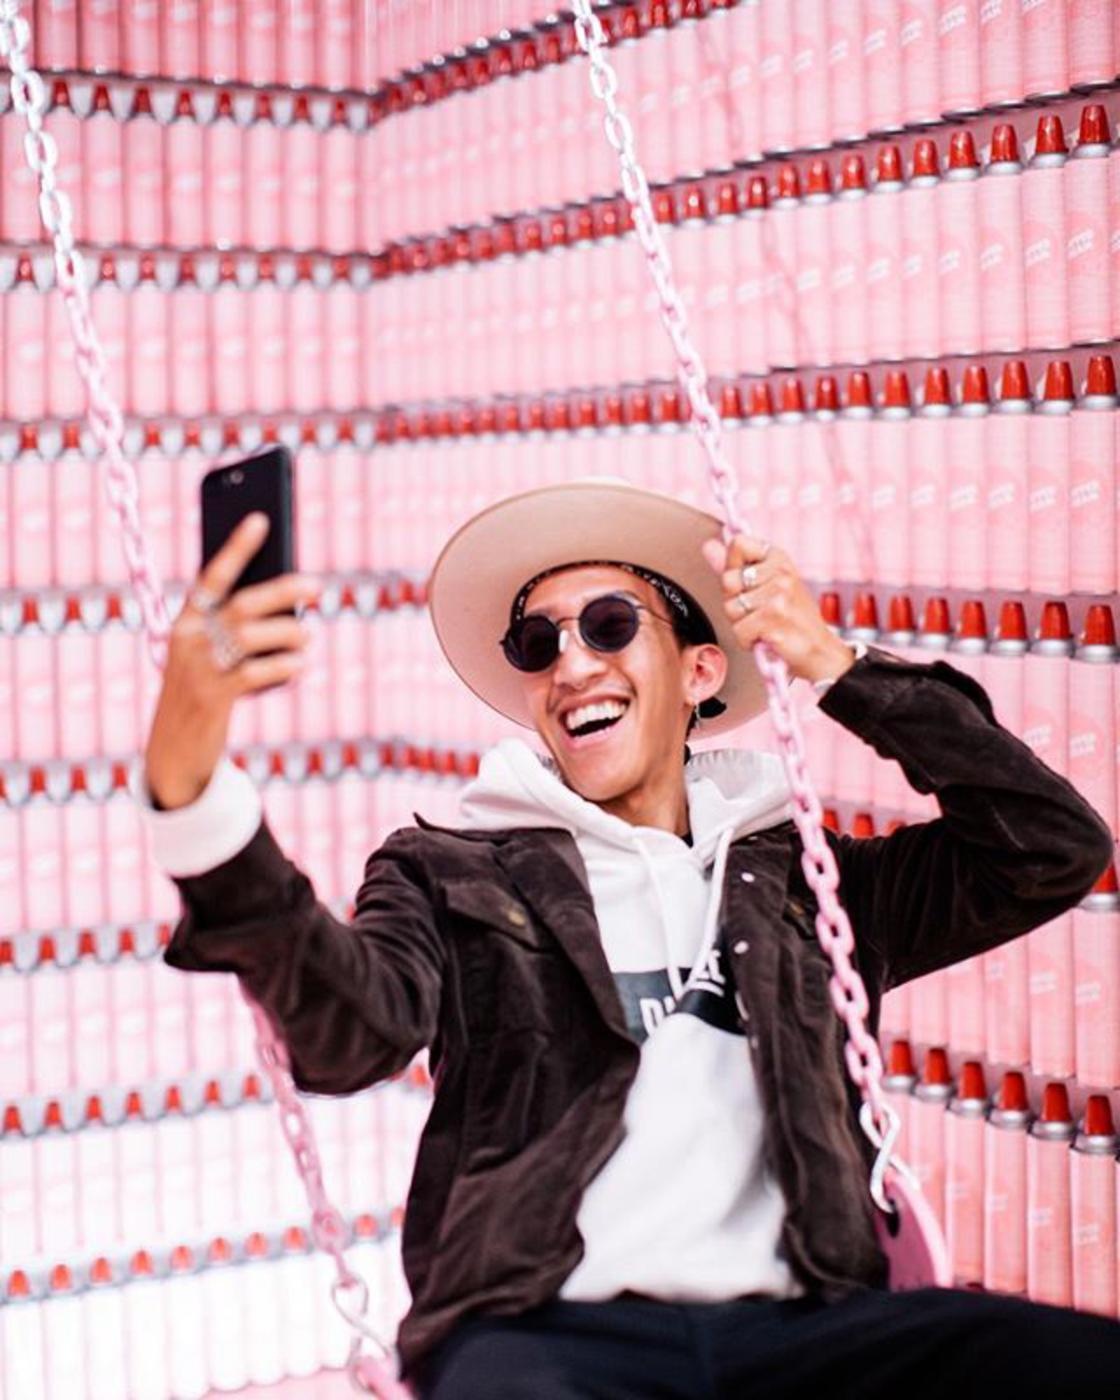 Art for Instagram – Two exhibitions for all the fans of selfies and Instagram!